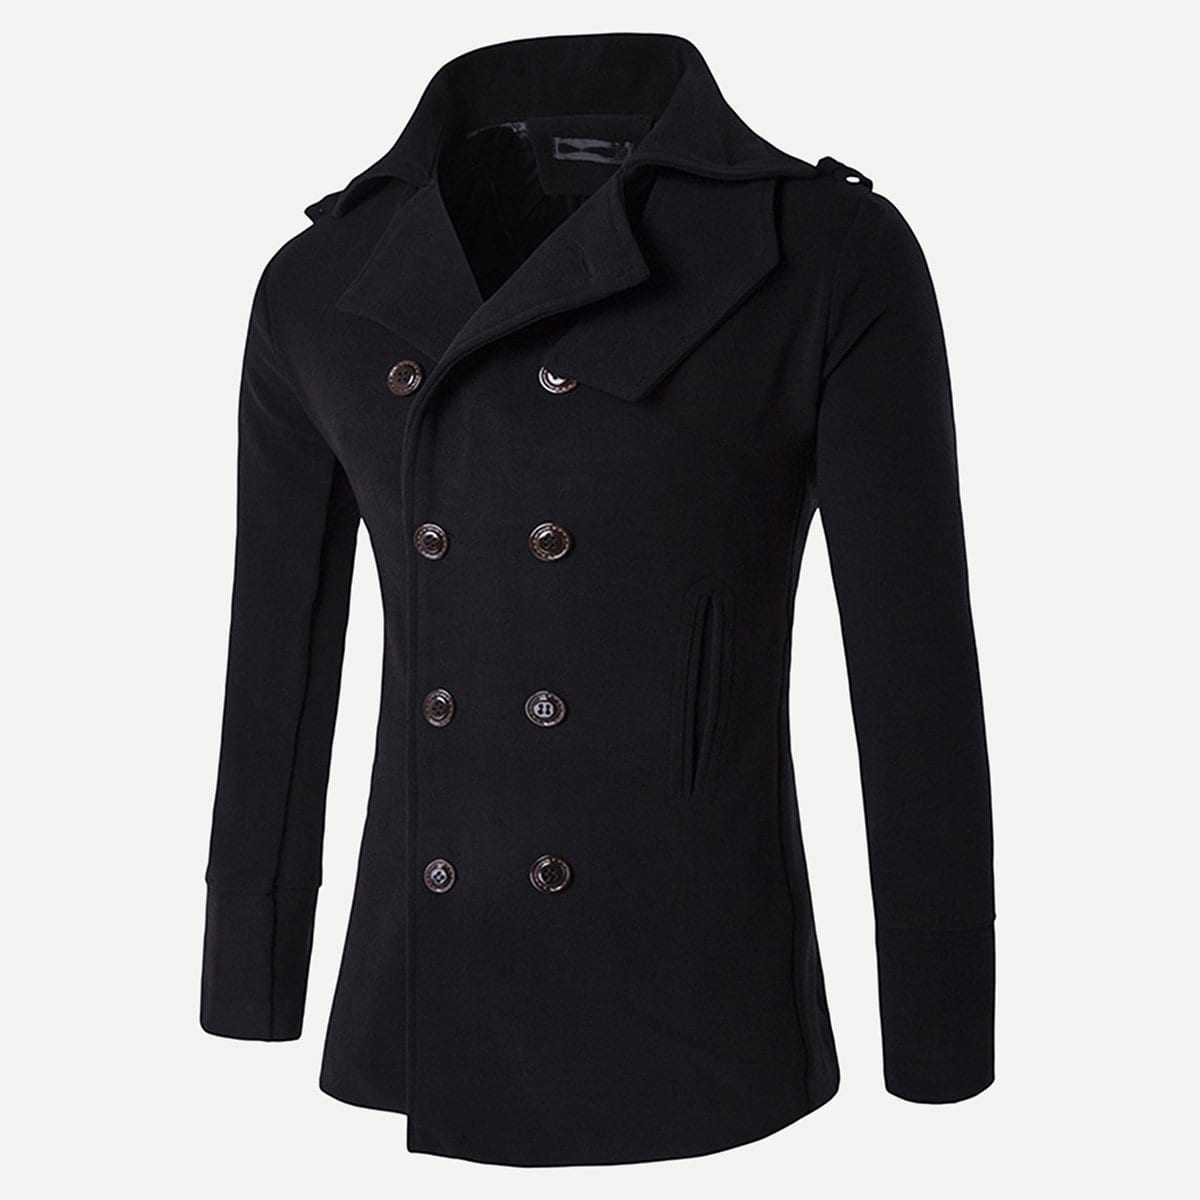 Guys Slit Back Solid Pea Coat in Black by ROMWE on GOOFASH